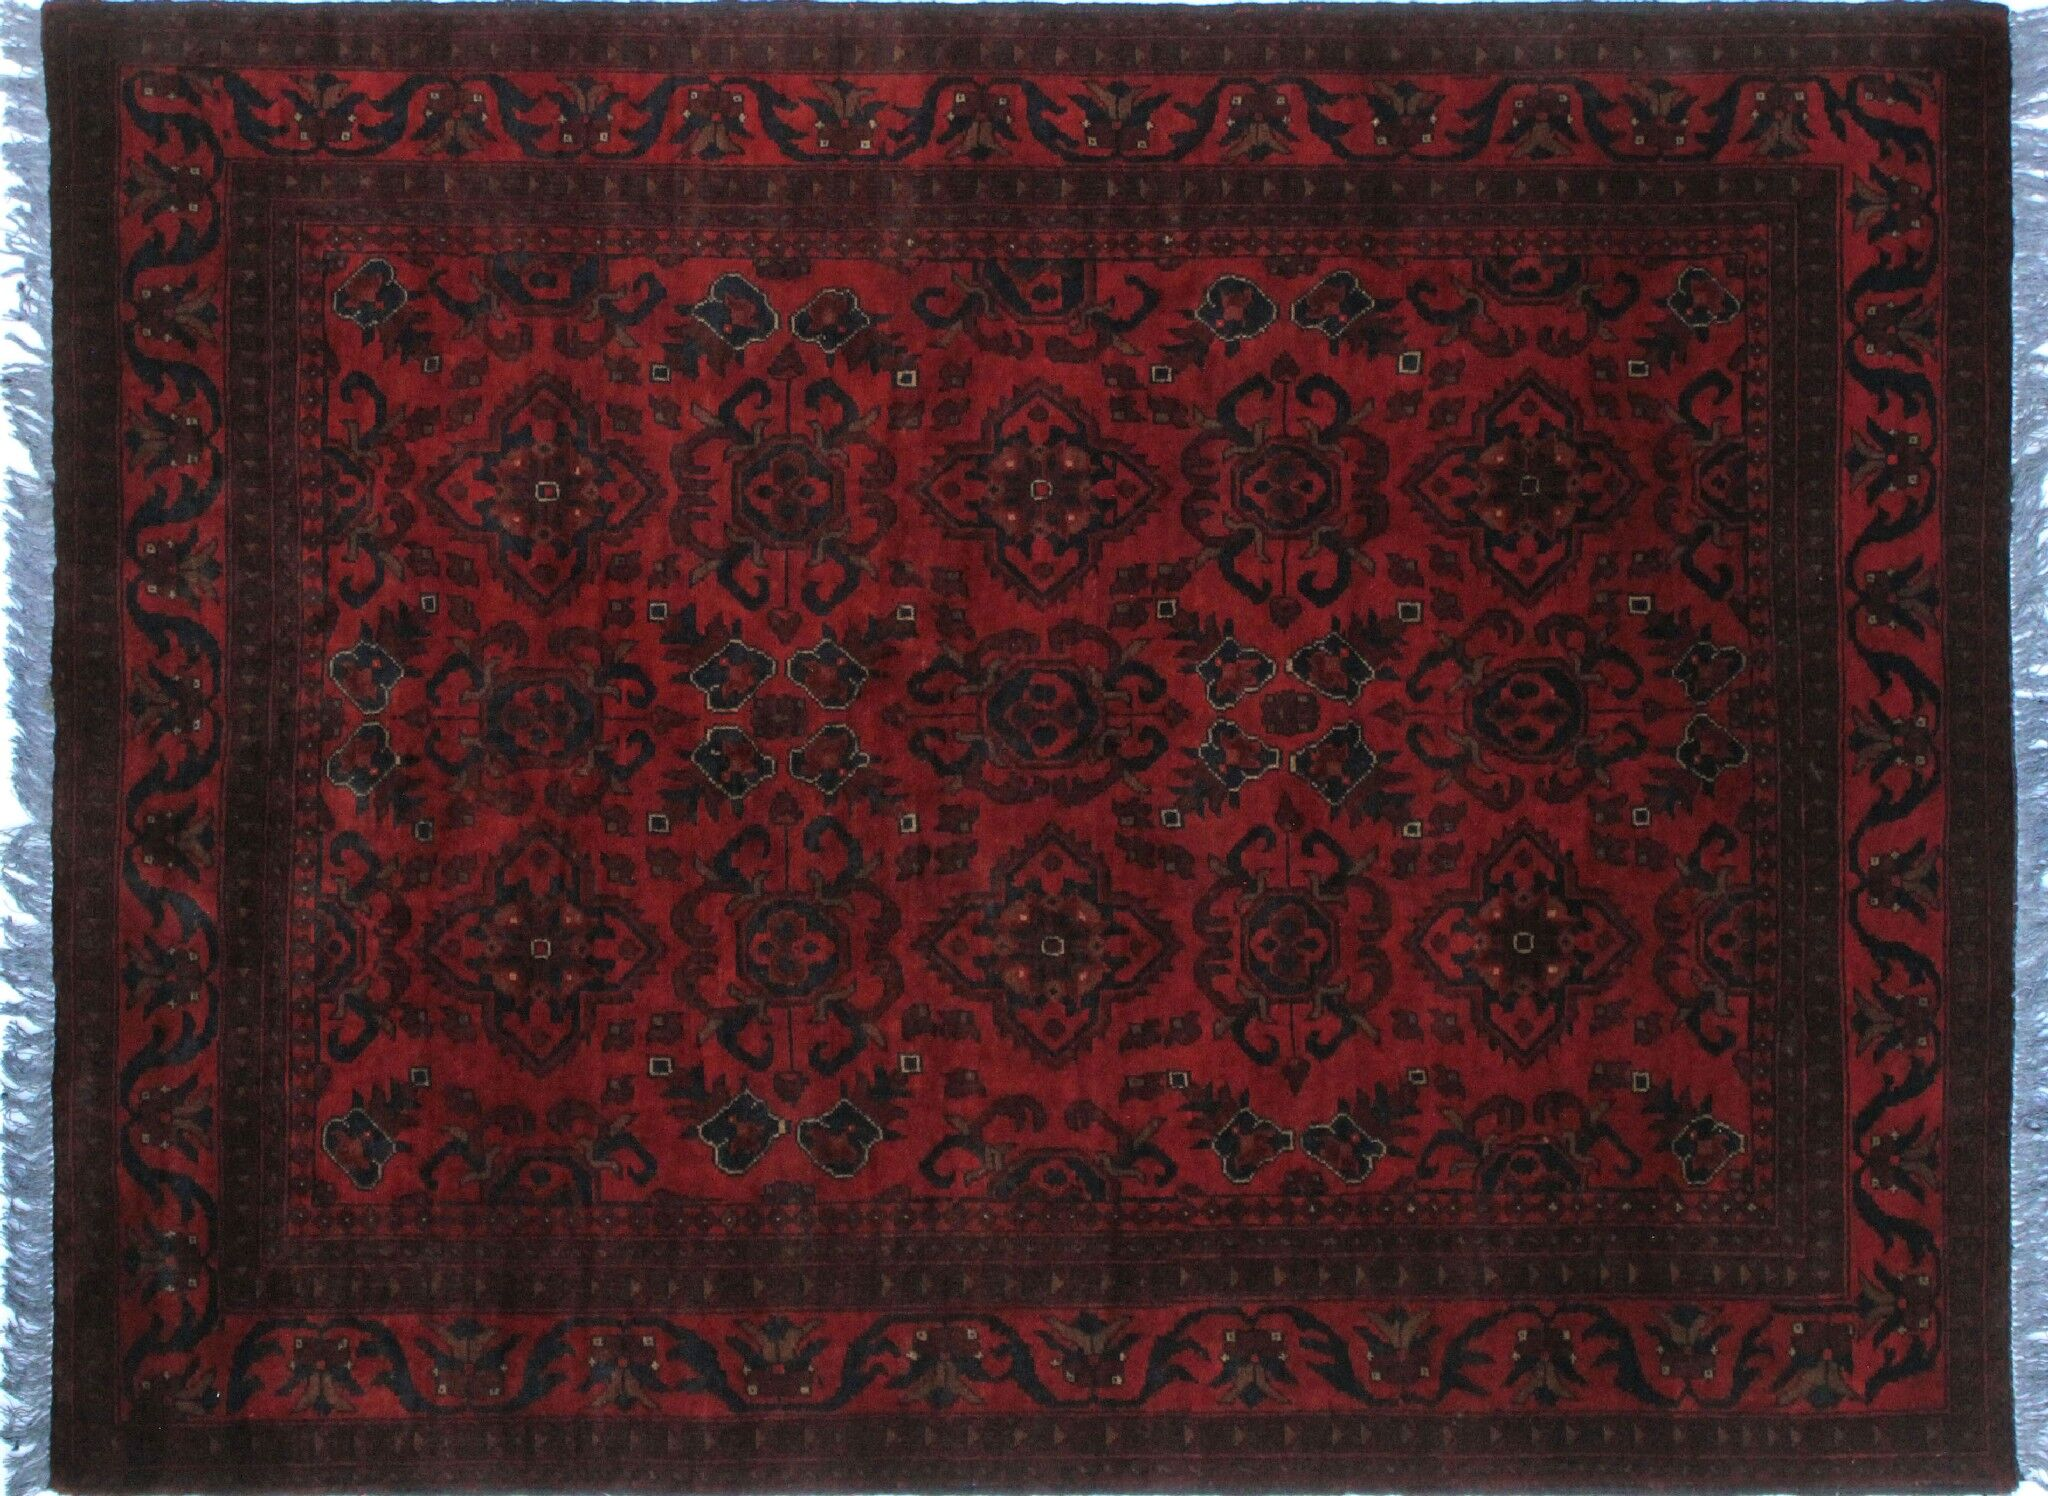 One-of-a-Kind Abeyta Tribal Hand-Knotted Red Oriental Fringe Border Area Rug